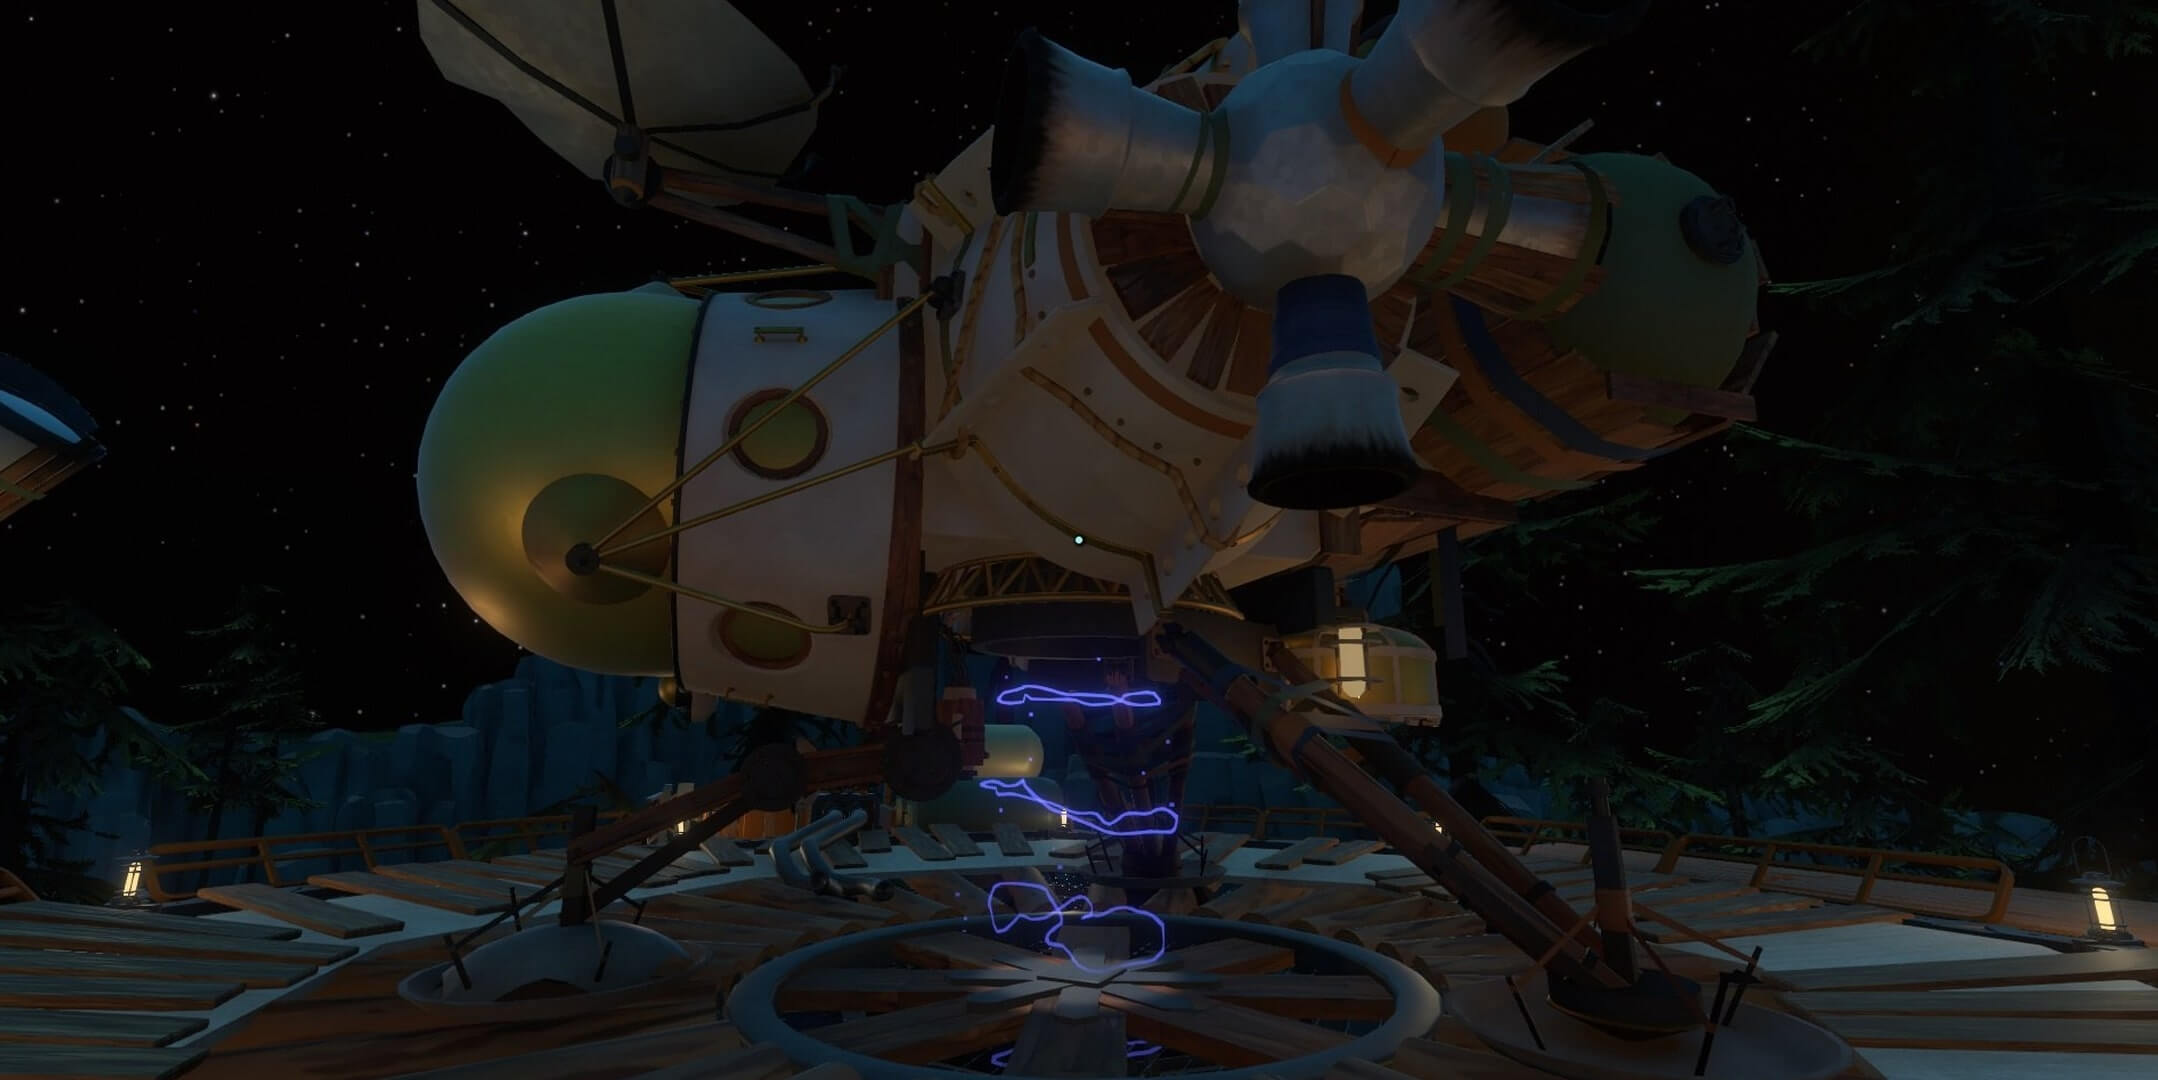 jeux espace outer wilds